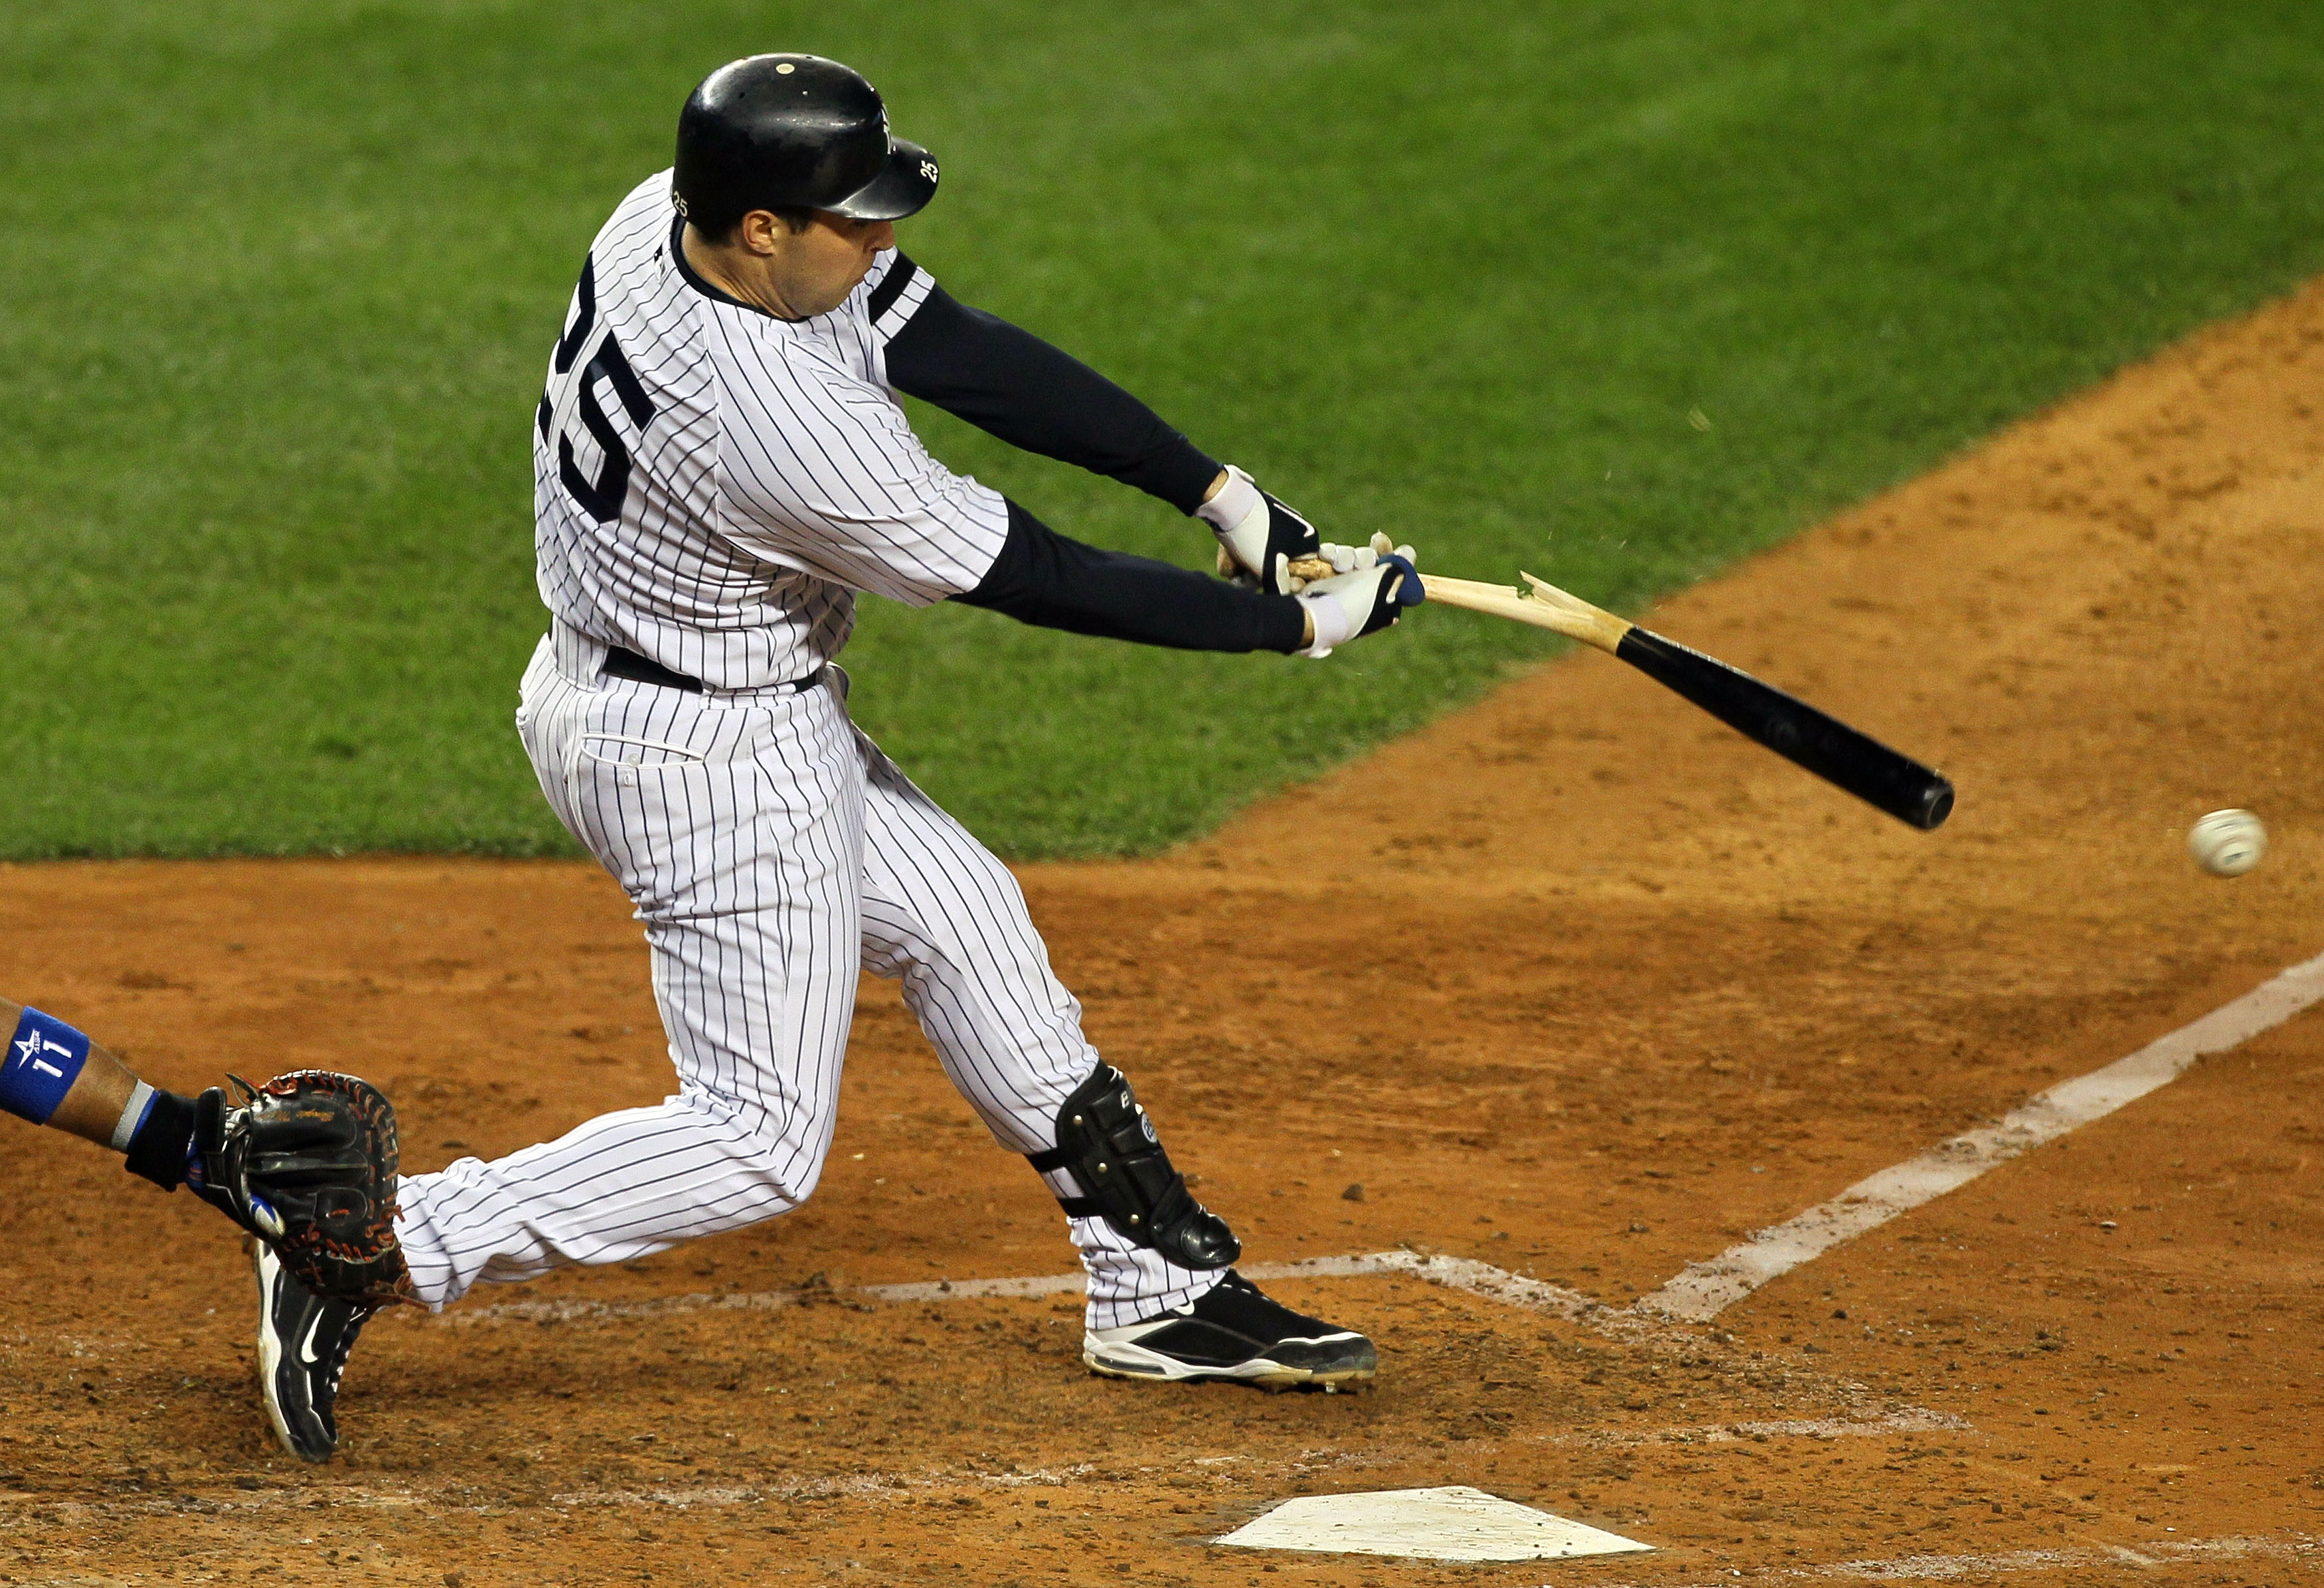 NEW YORK - OCTOBER 18:  Mark Teixeira #25 of the New York Yankees hits a broken bat ground out to the shortstop in the bottom of the sixth inning against the Texas Rangers in Game Three of the ALCS during the 2010 MLB Playoffs at Yankee Stadium on October